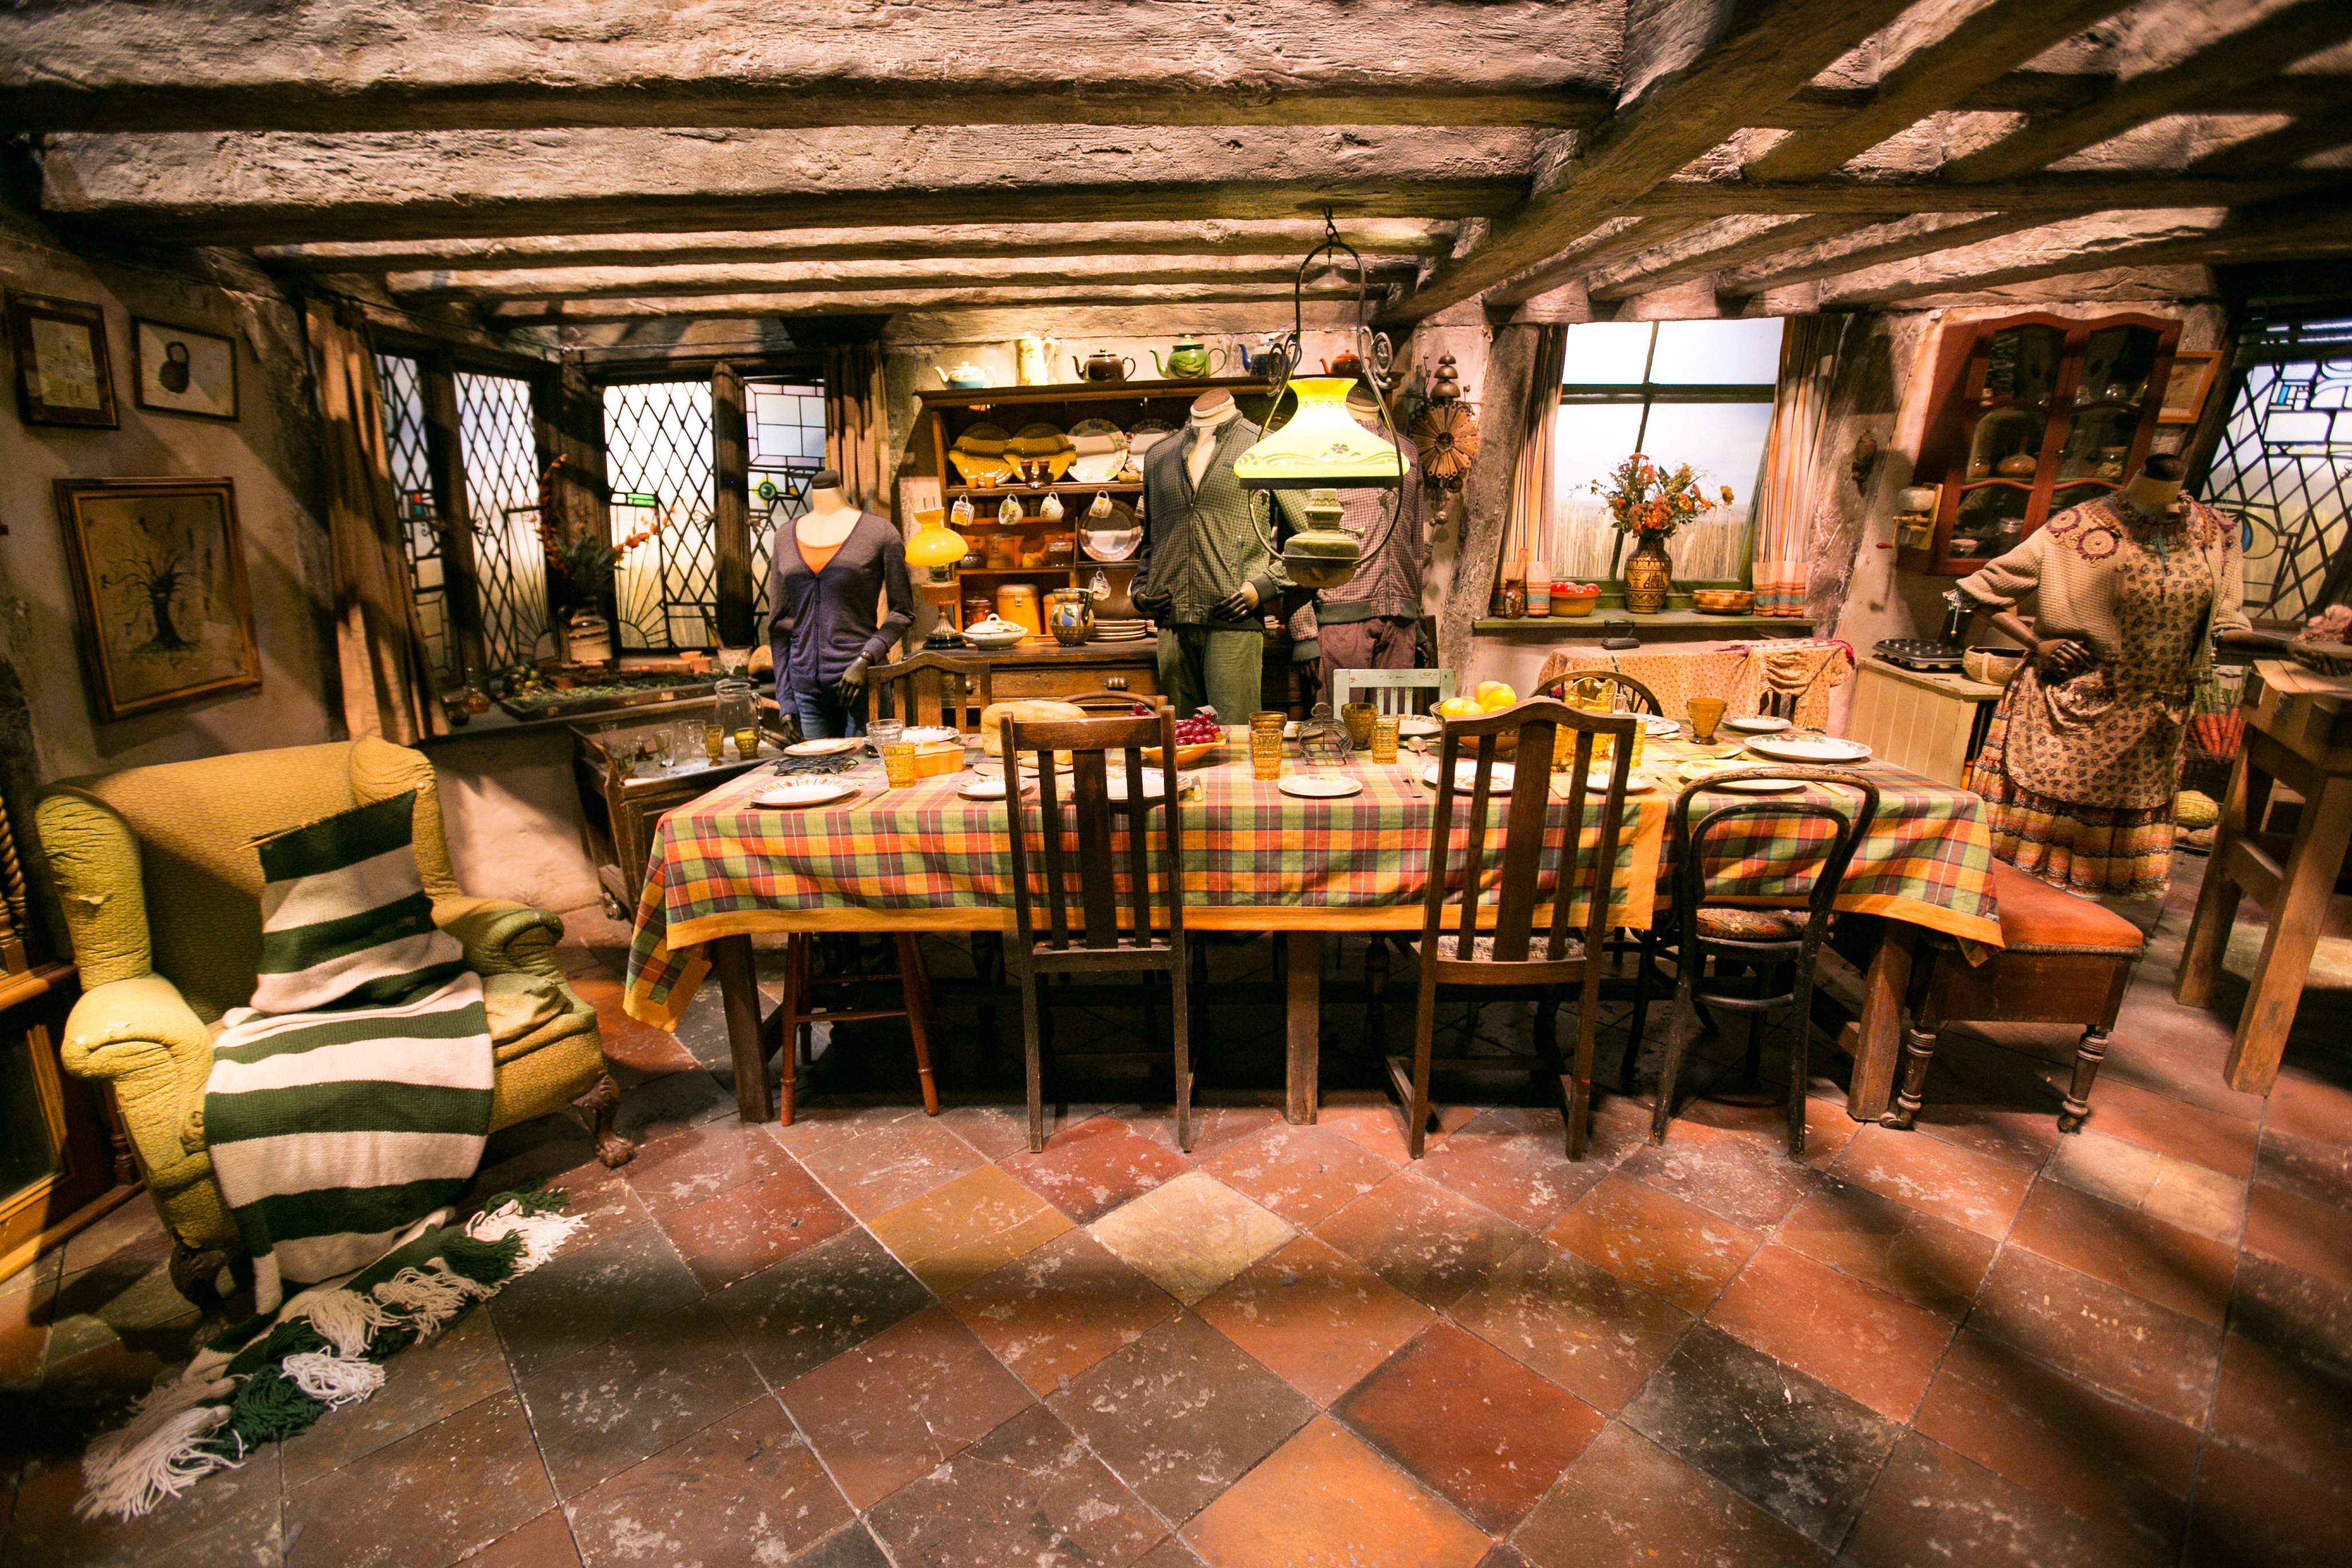 harry-potter-studio-tour-the-burrow